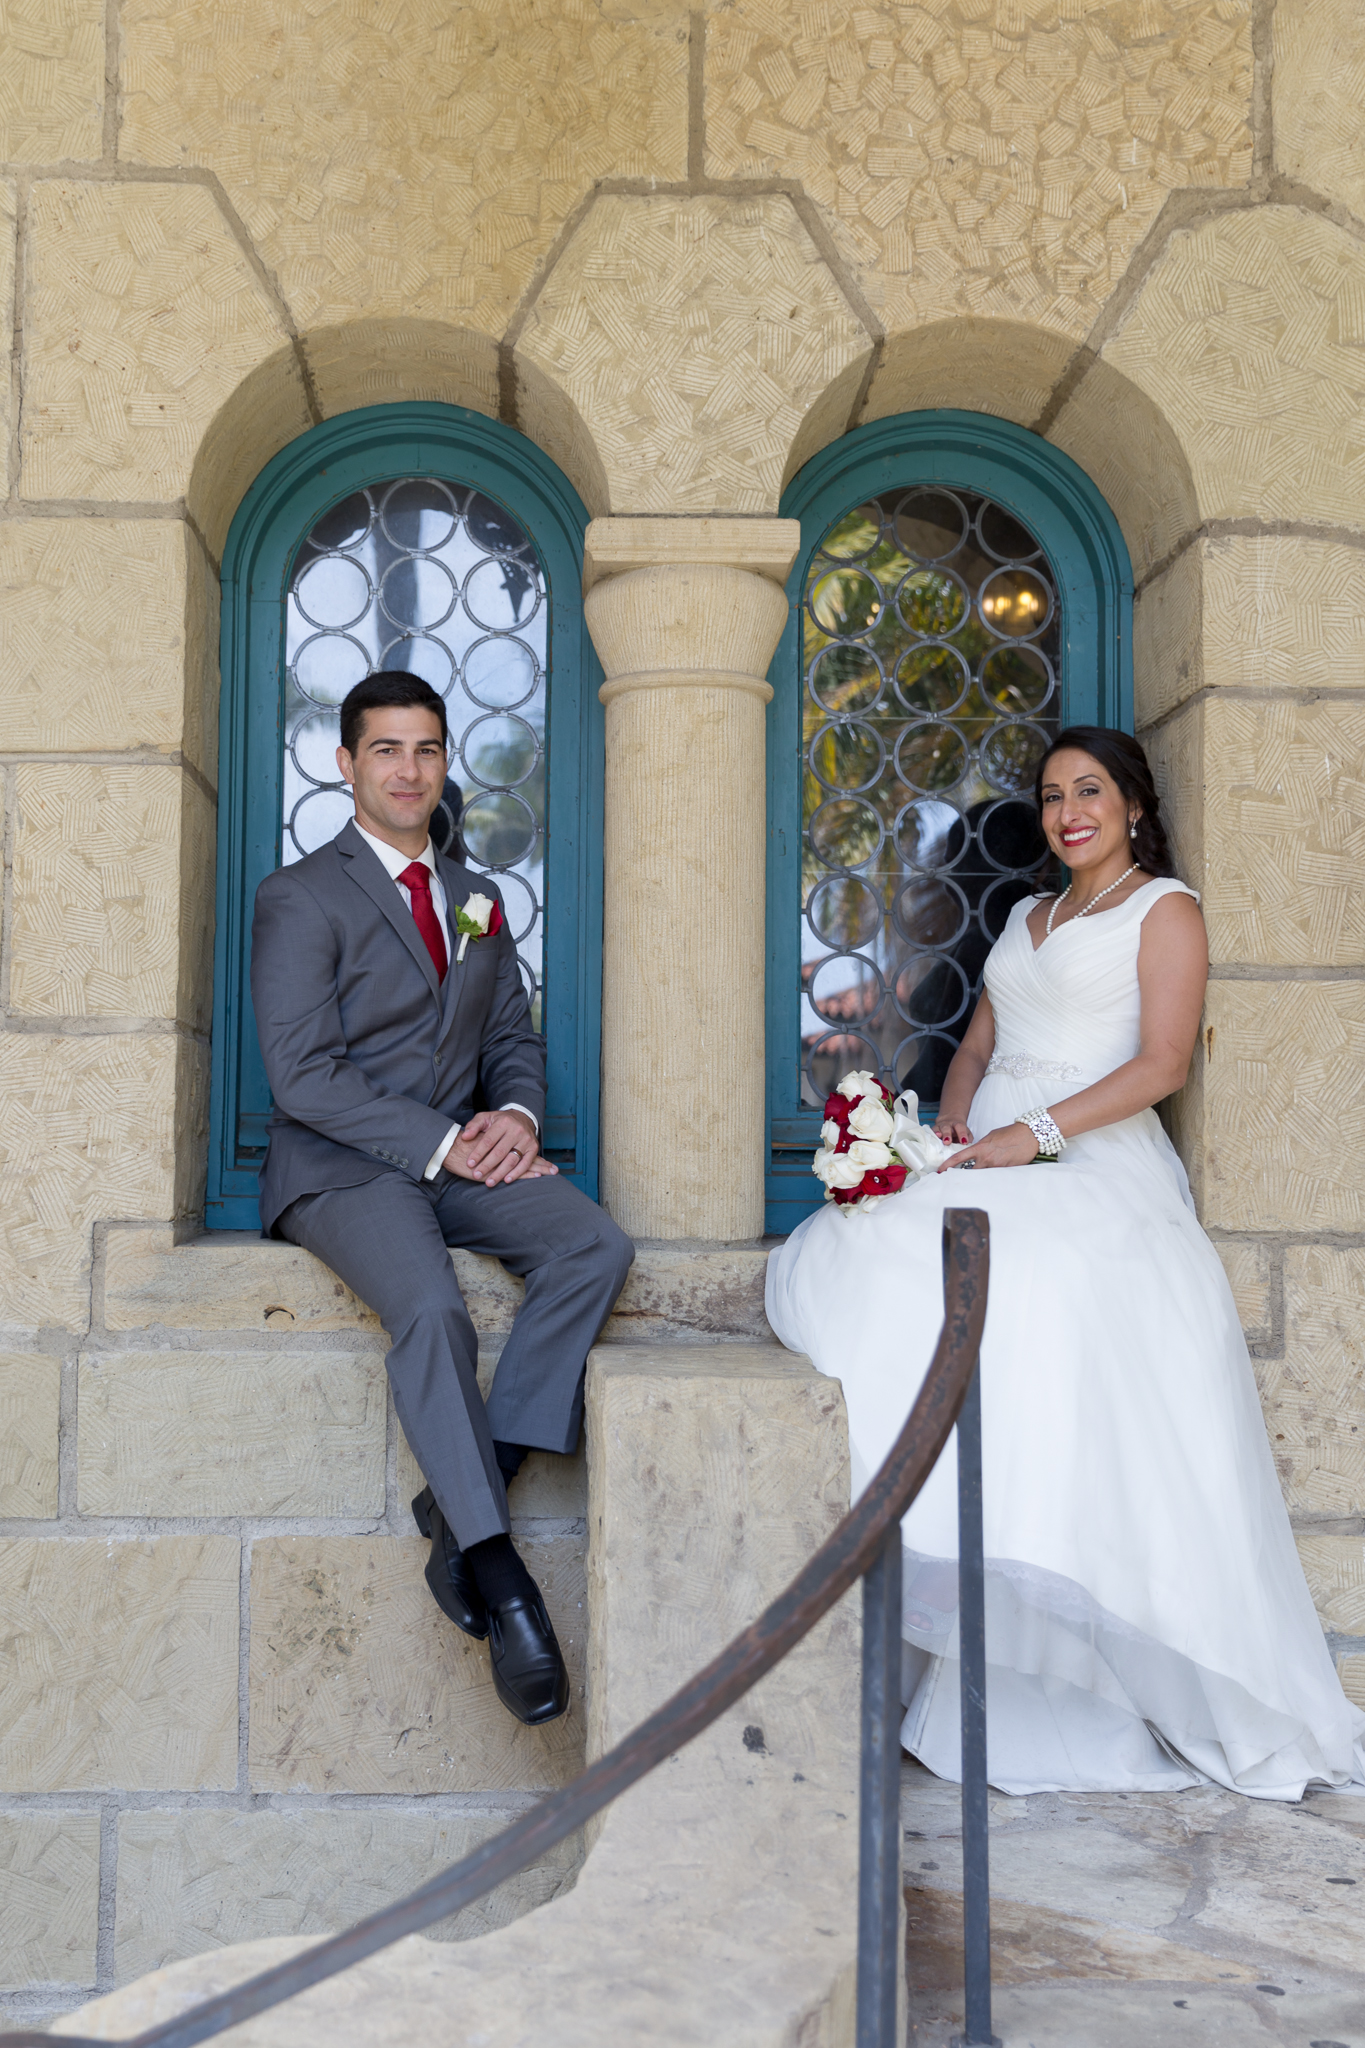 SantaBarbaraCourthouseWeddingPhotographerphotography